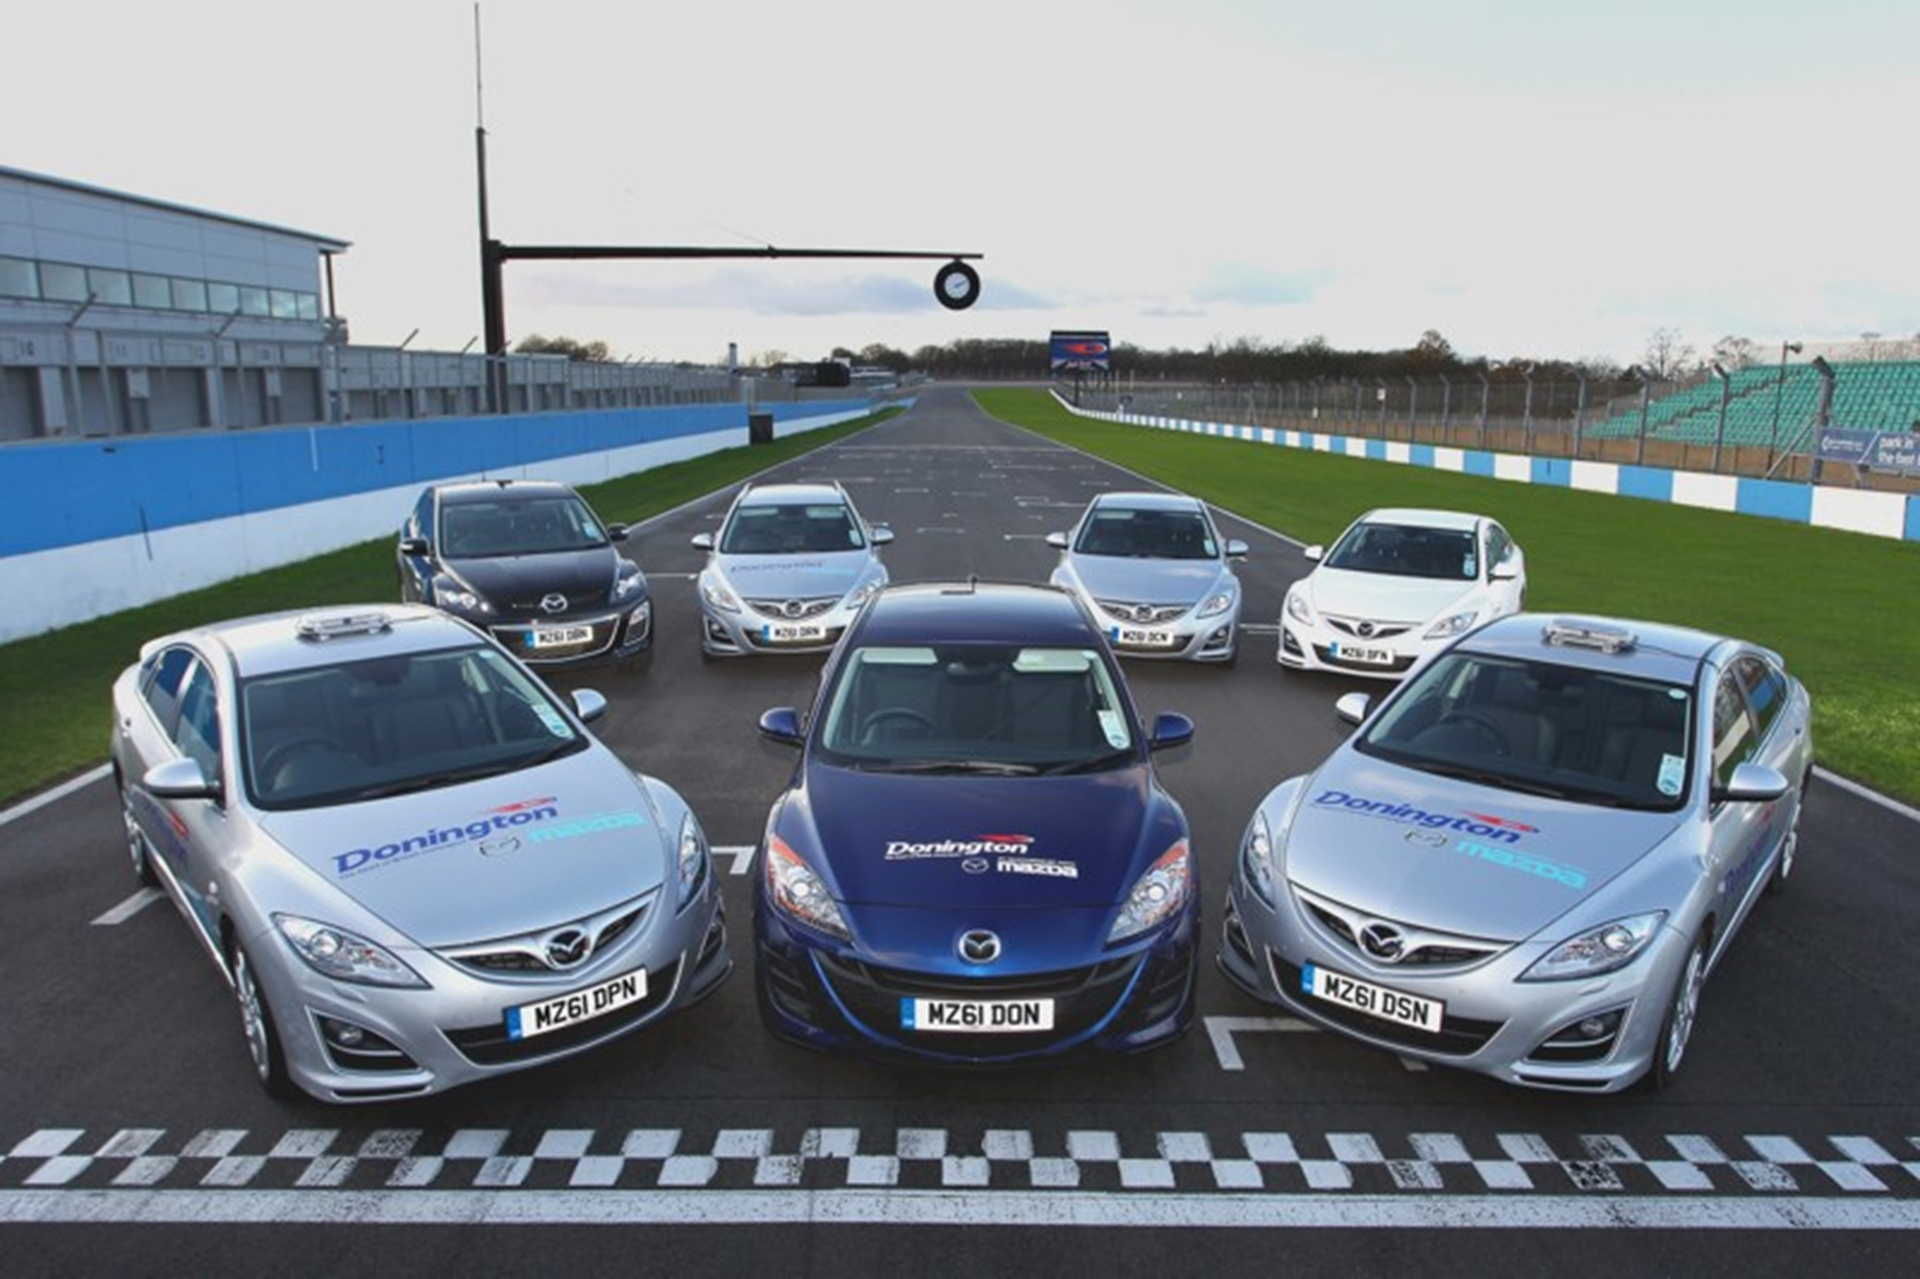 Mazda teams up with Donington Park